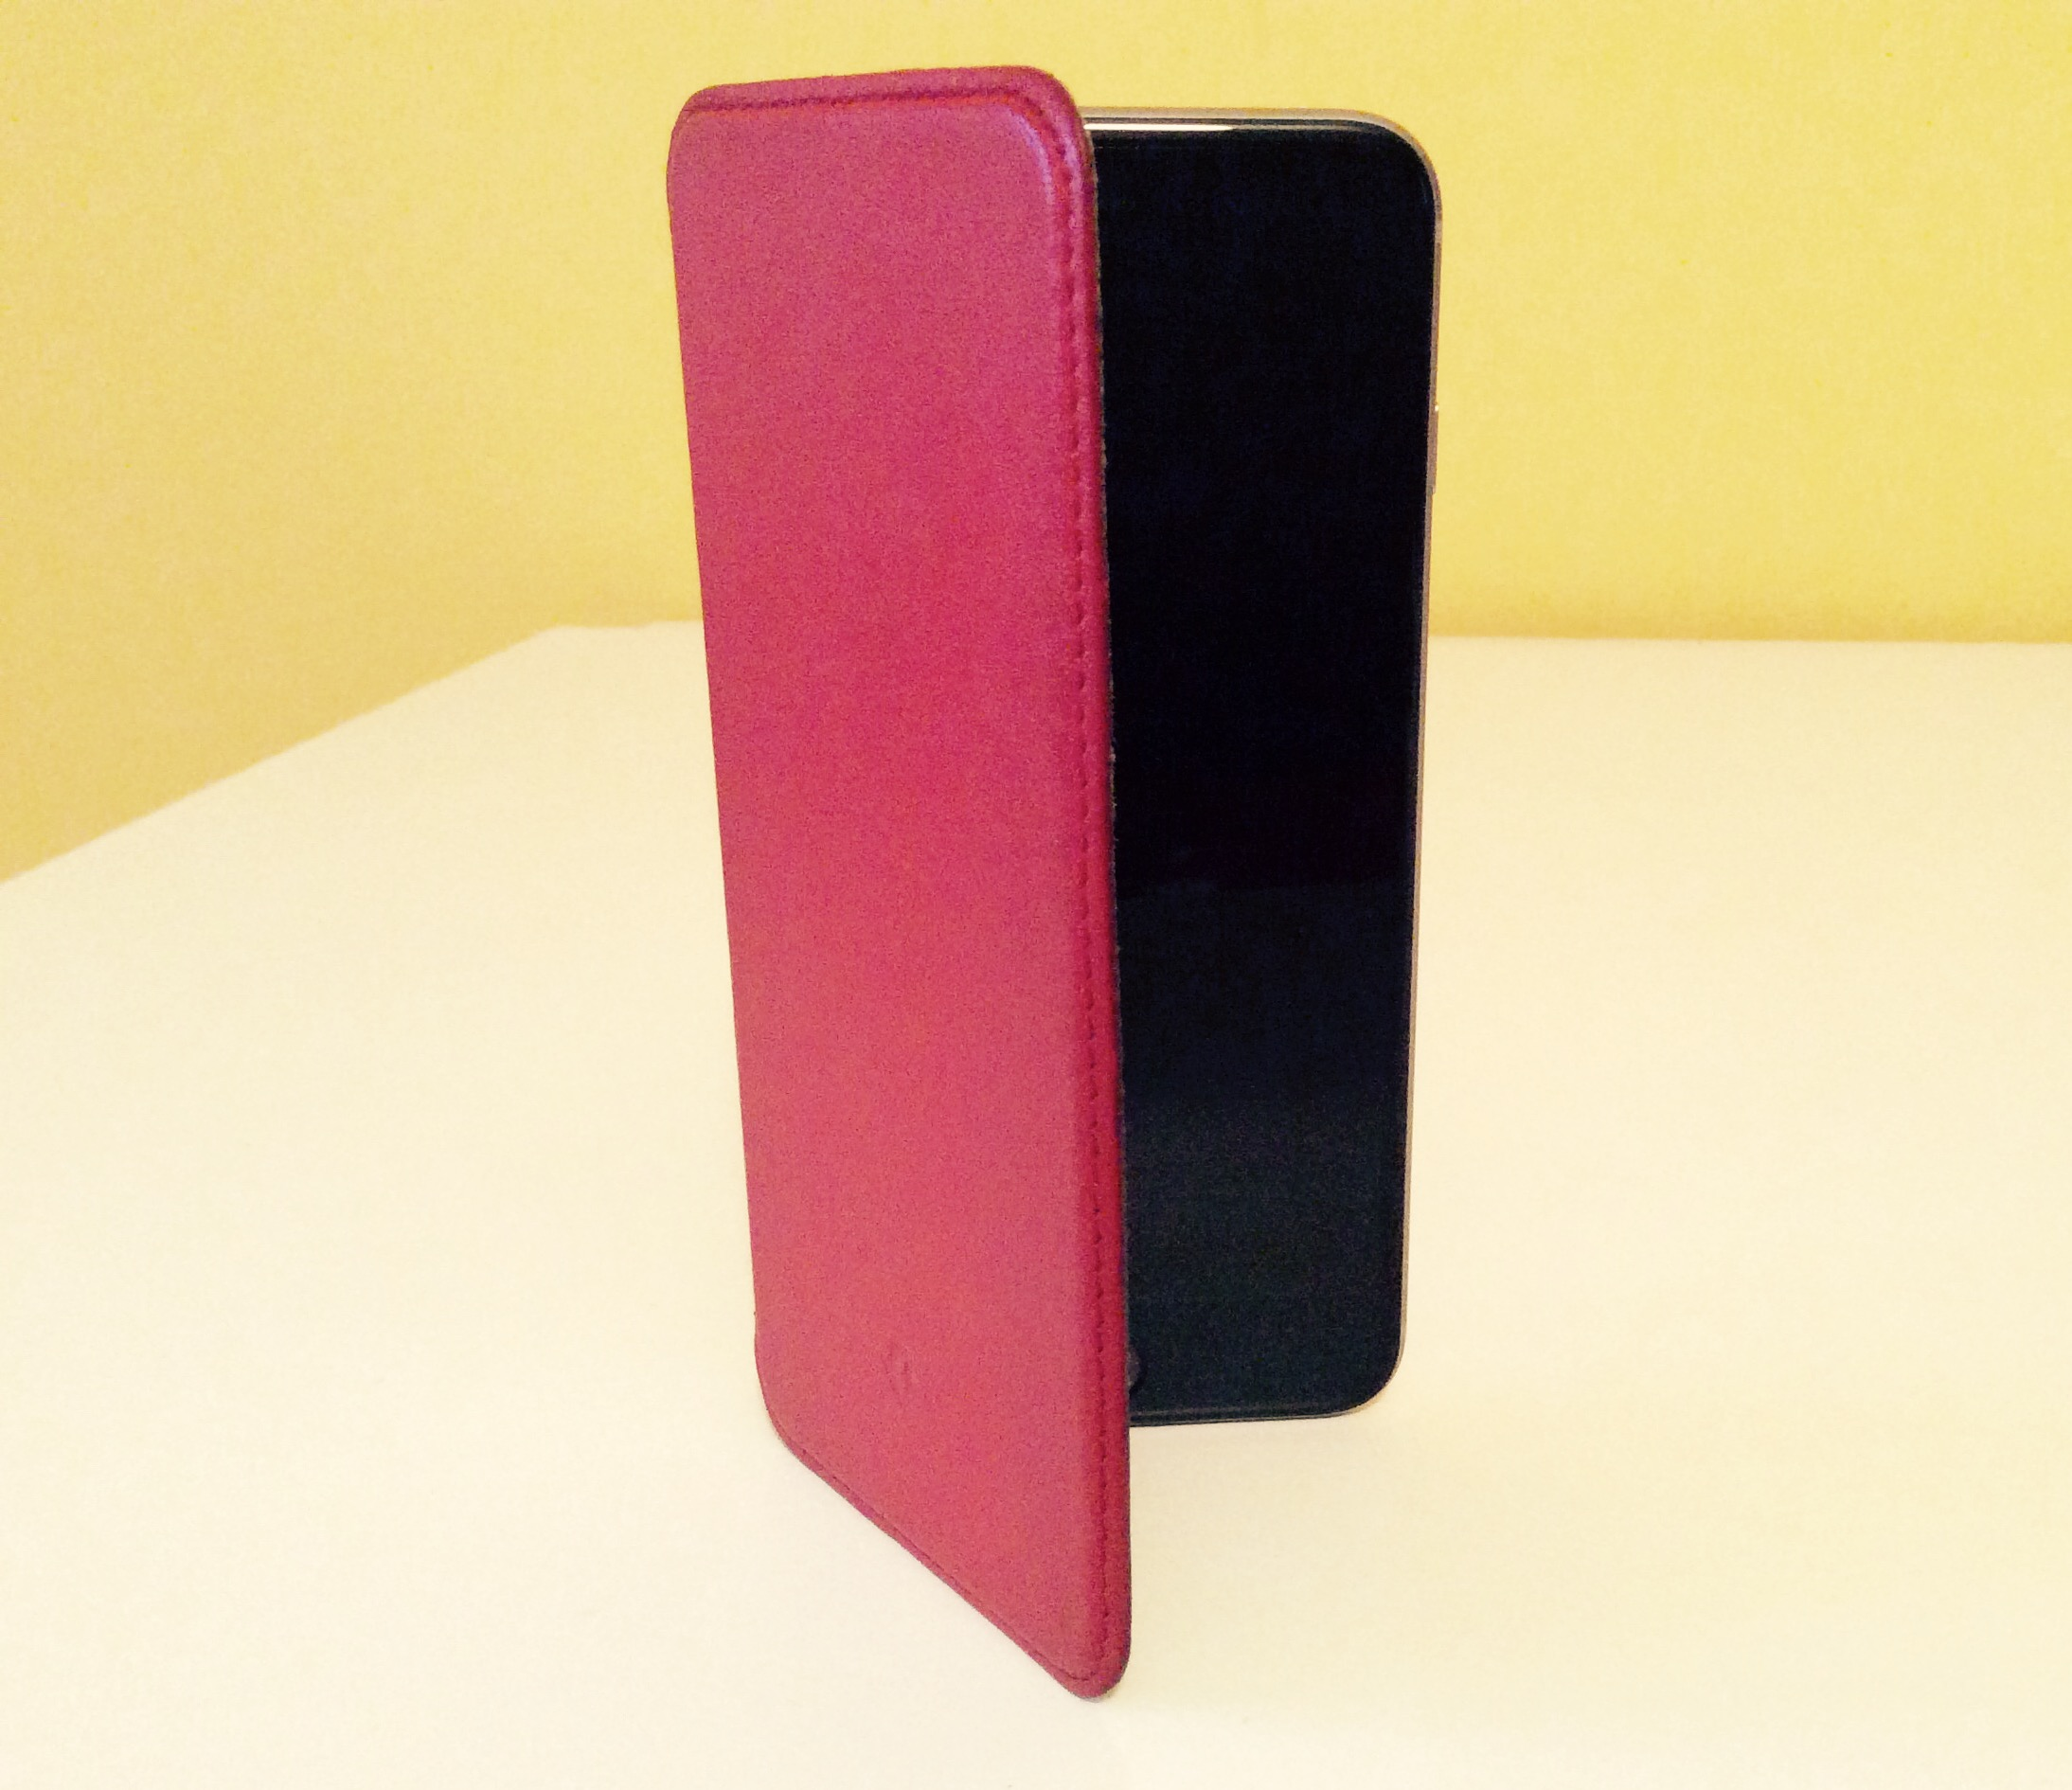 Twelve South SurfacePad for iPhone 6 Plus picture 00009